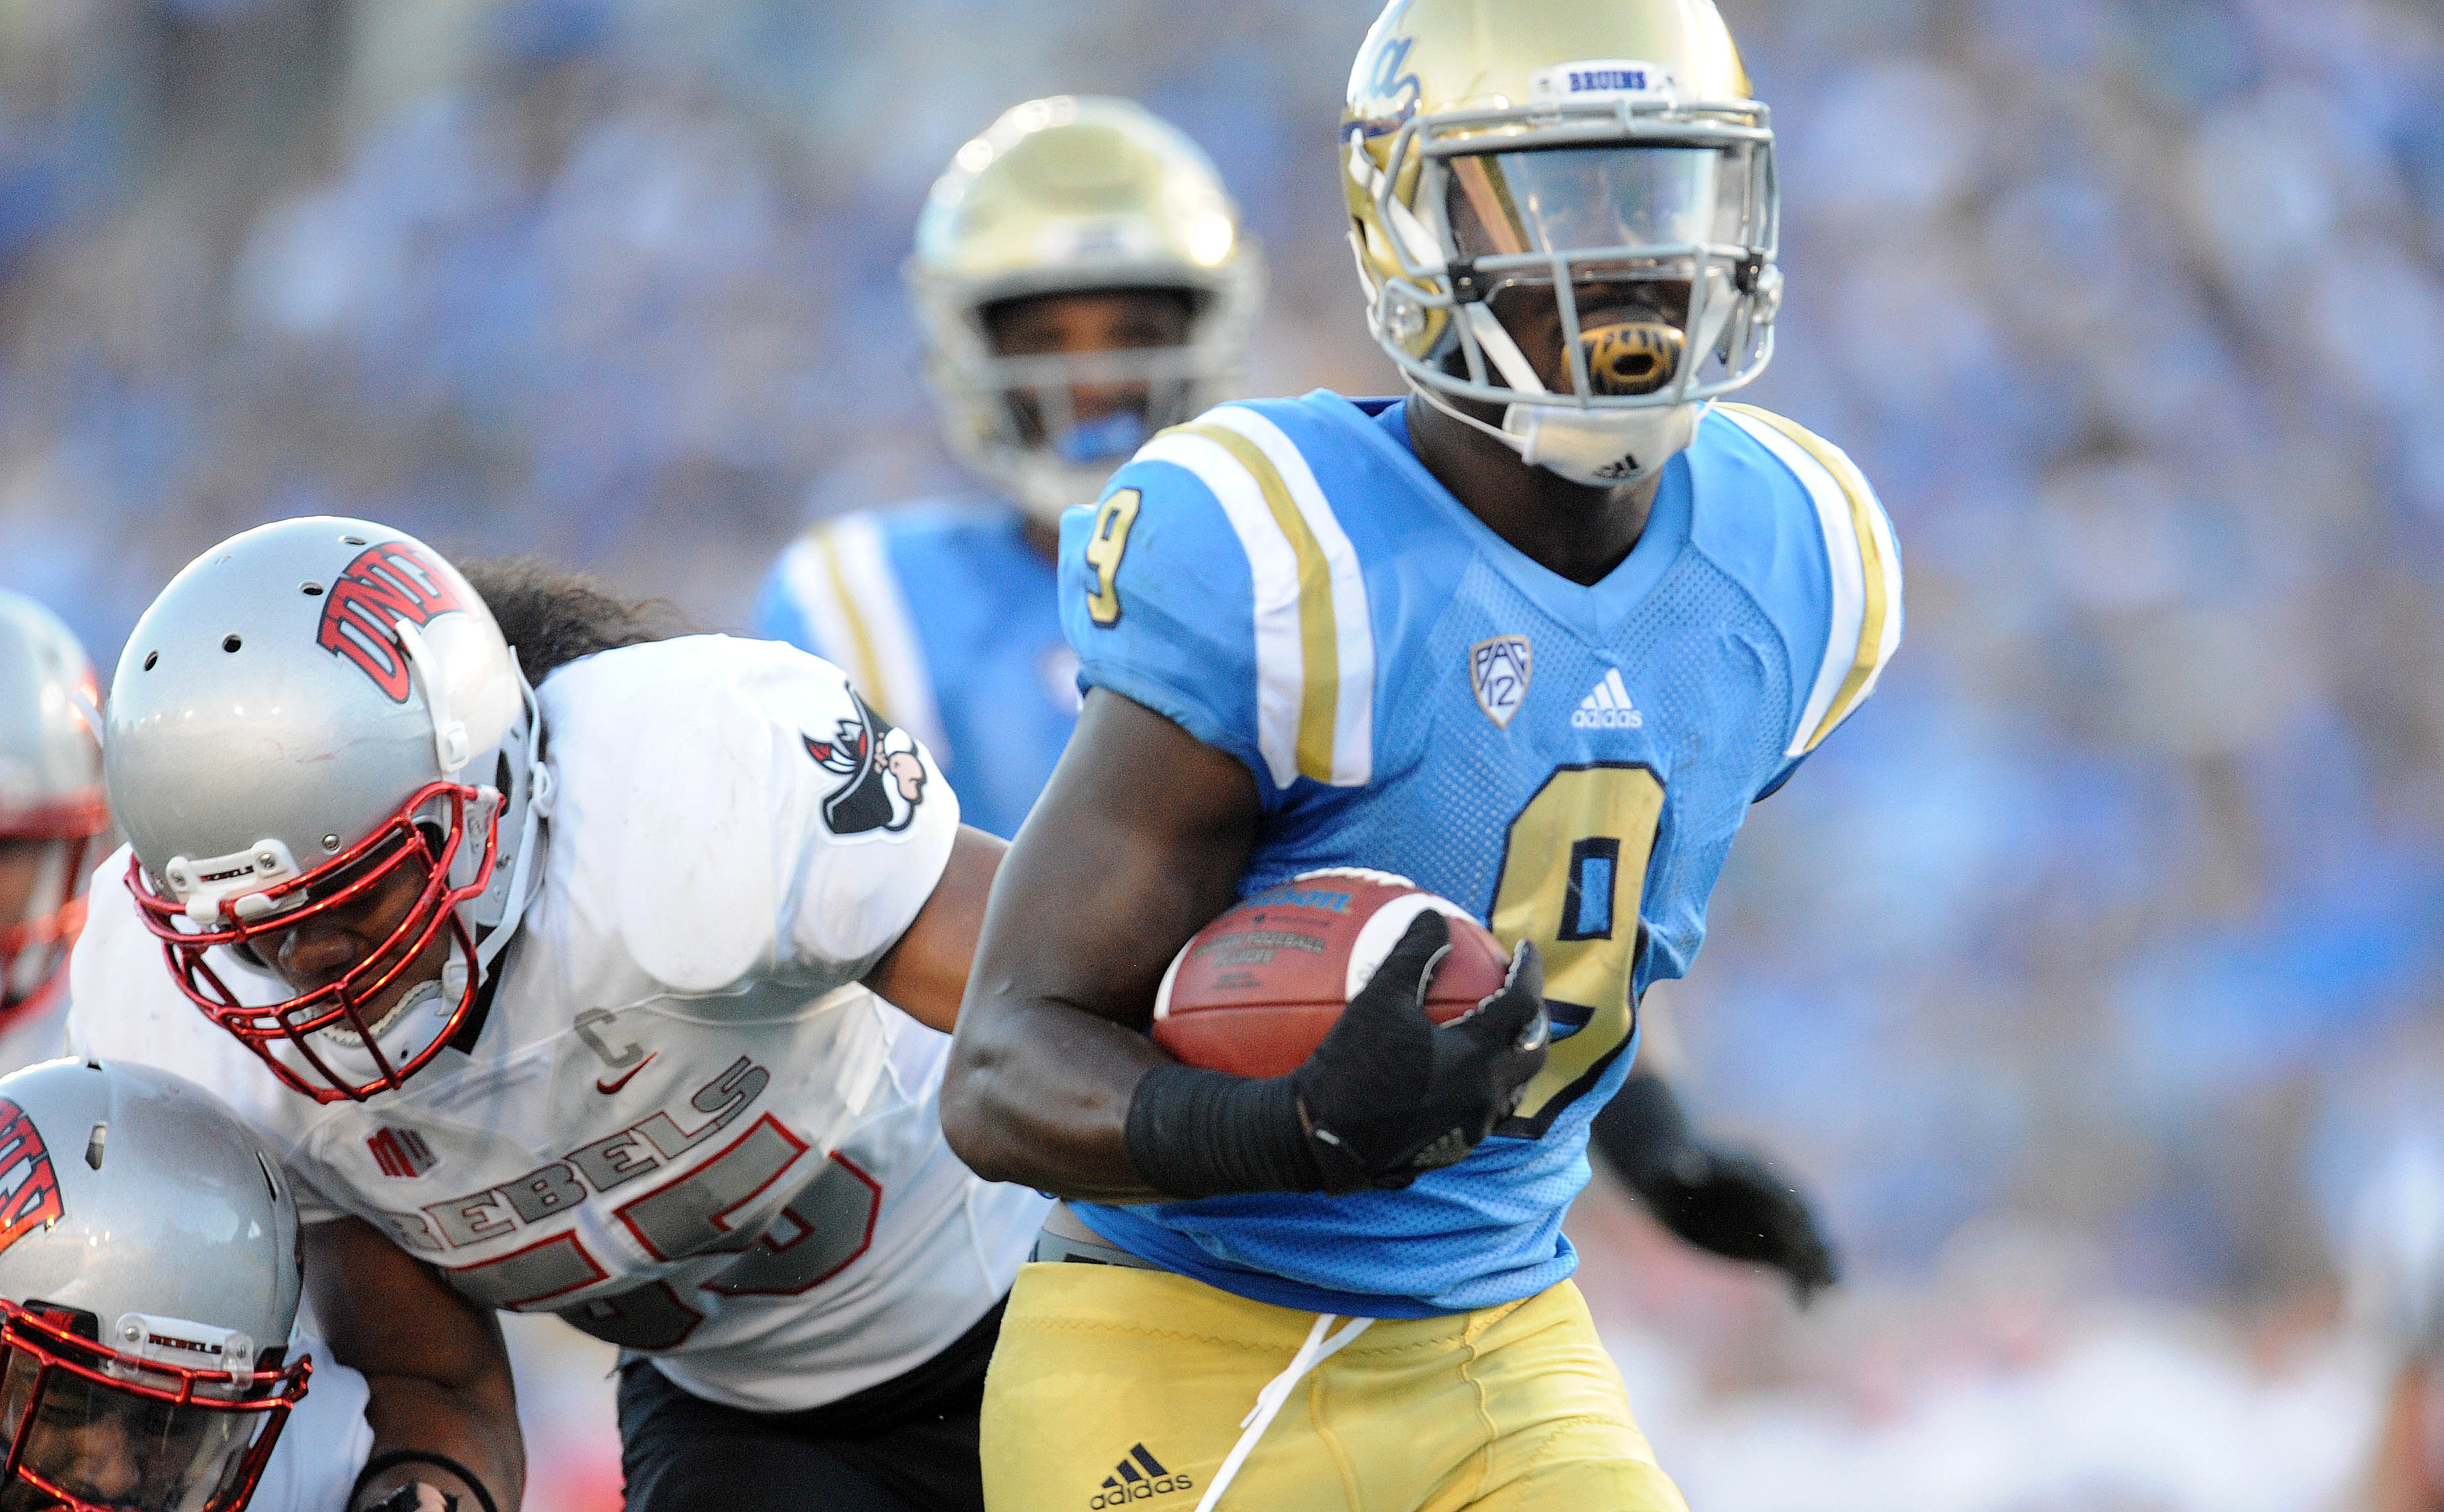 Soso Jamabo scored 3 TDs, in the Bruins' 42-21 victory over UNLV.